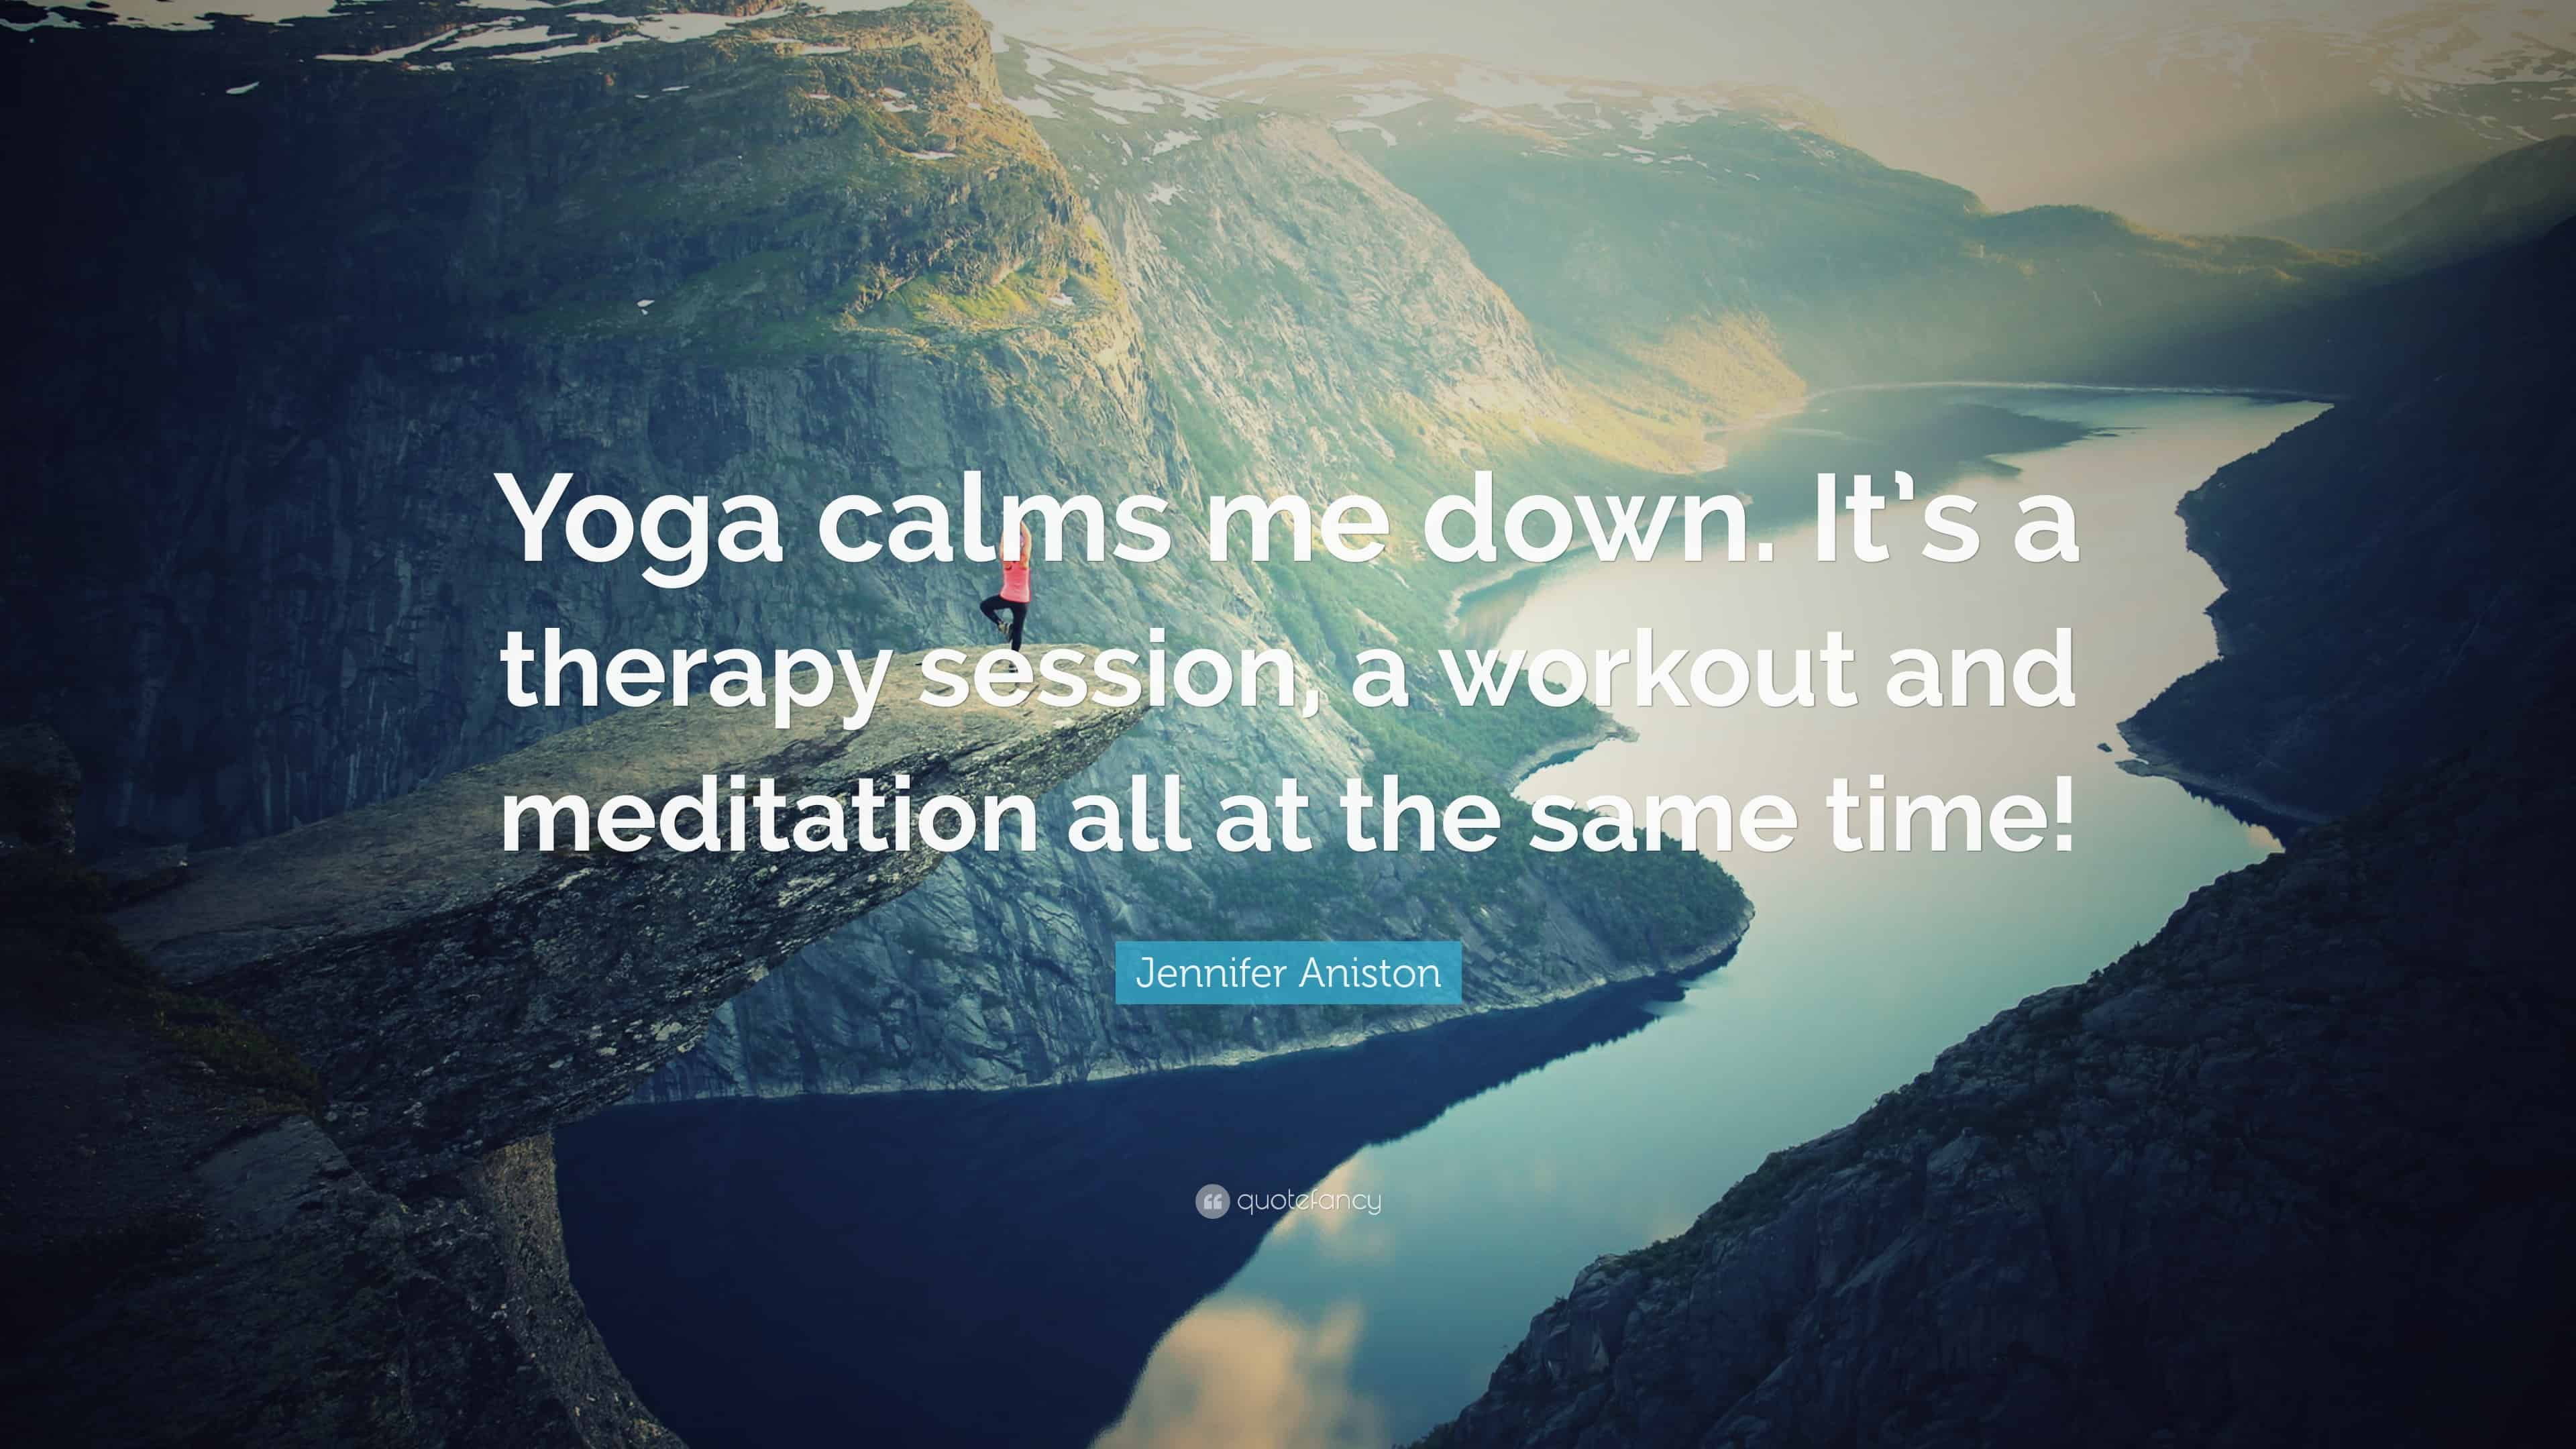 """Yoga calms me down. It's a therapy session, a workout, and meditation all at the same time!"""